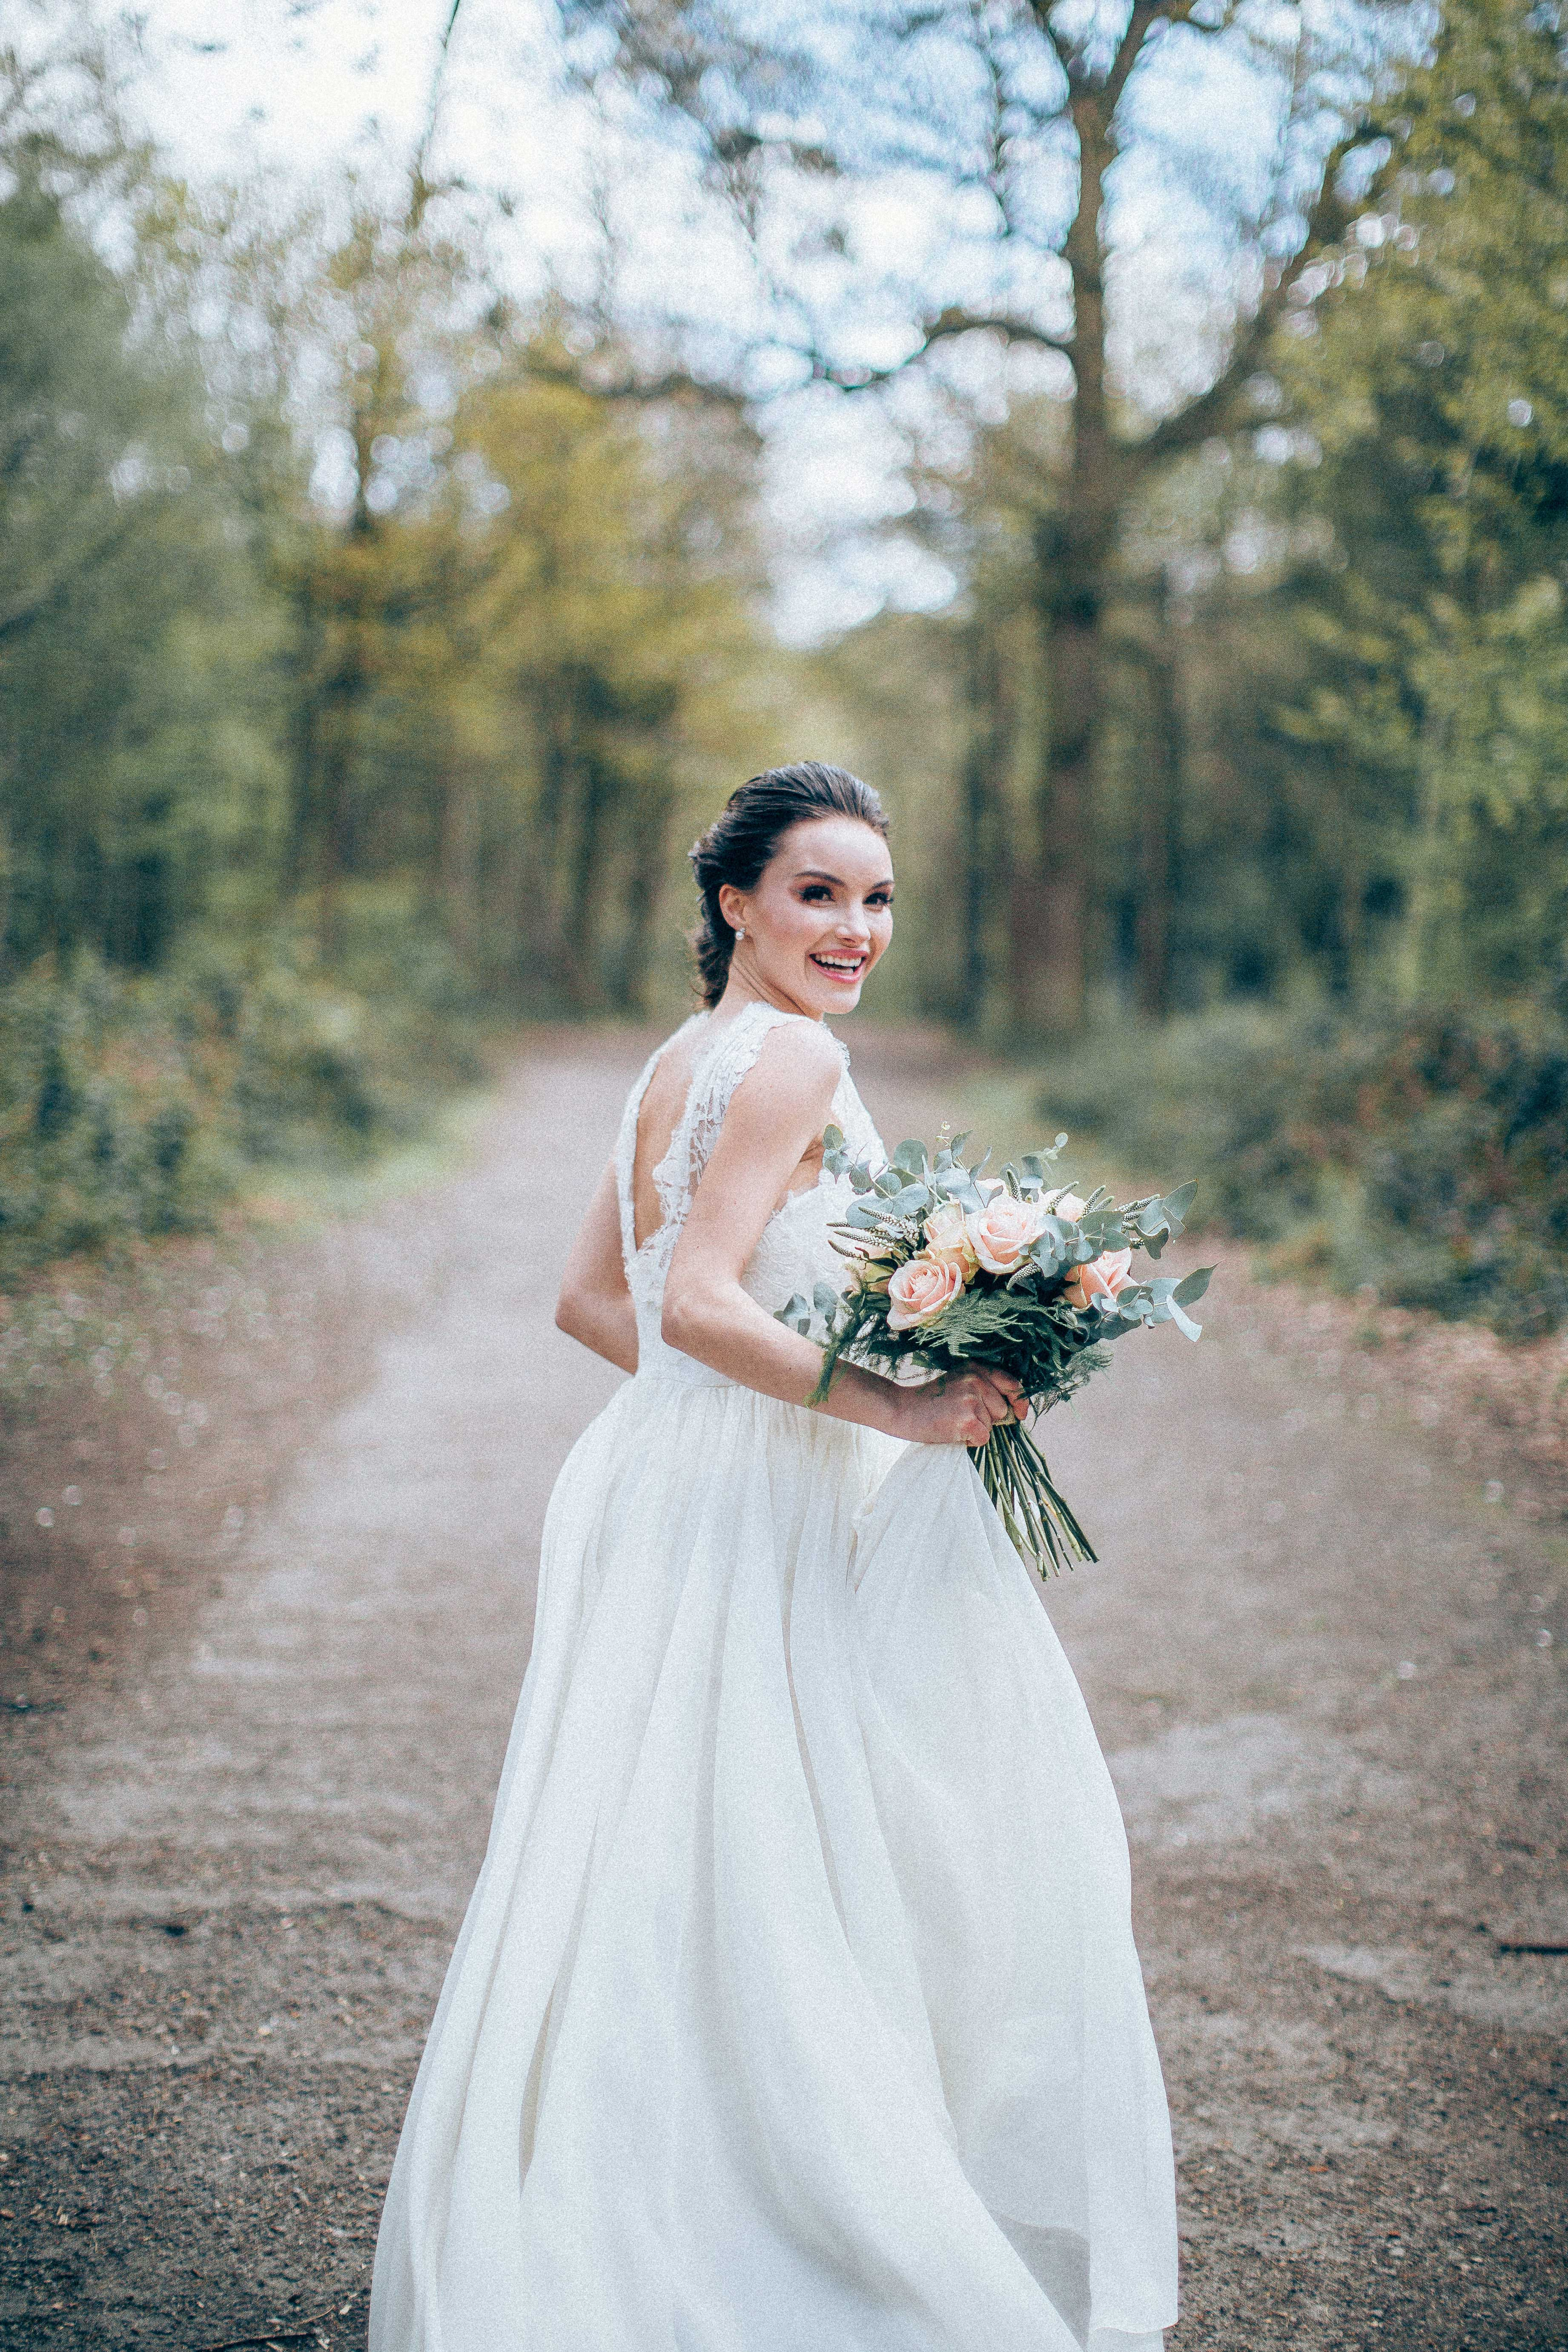 Absolutely Weddings: Five British wedding gown designers to know